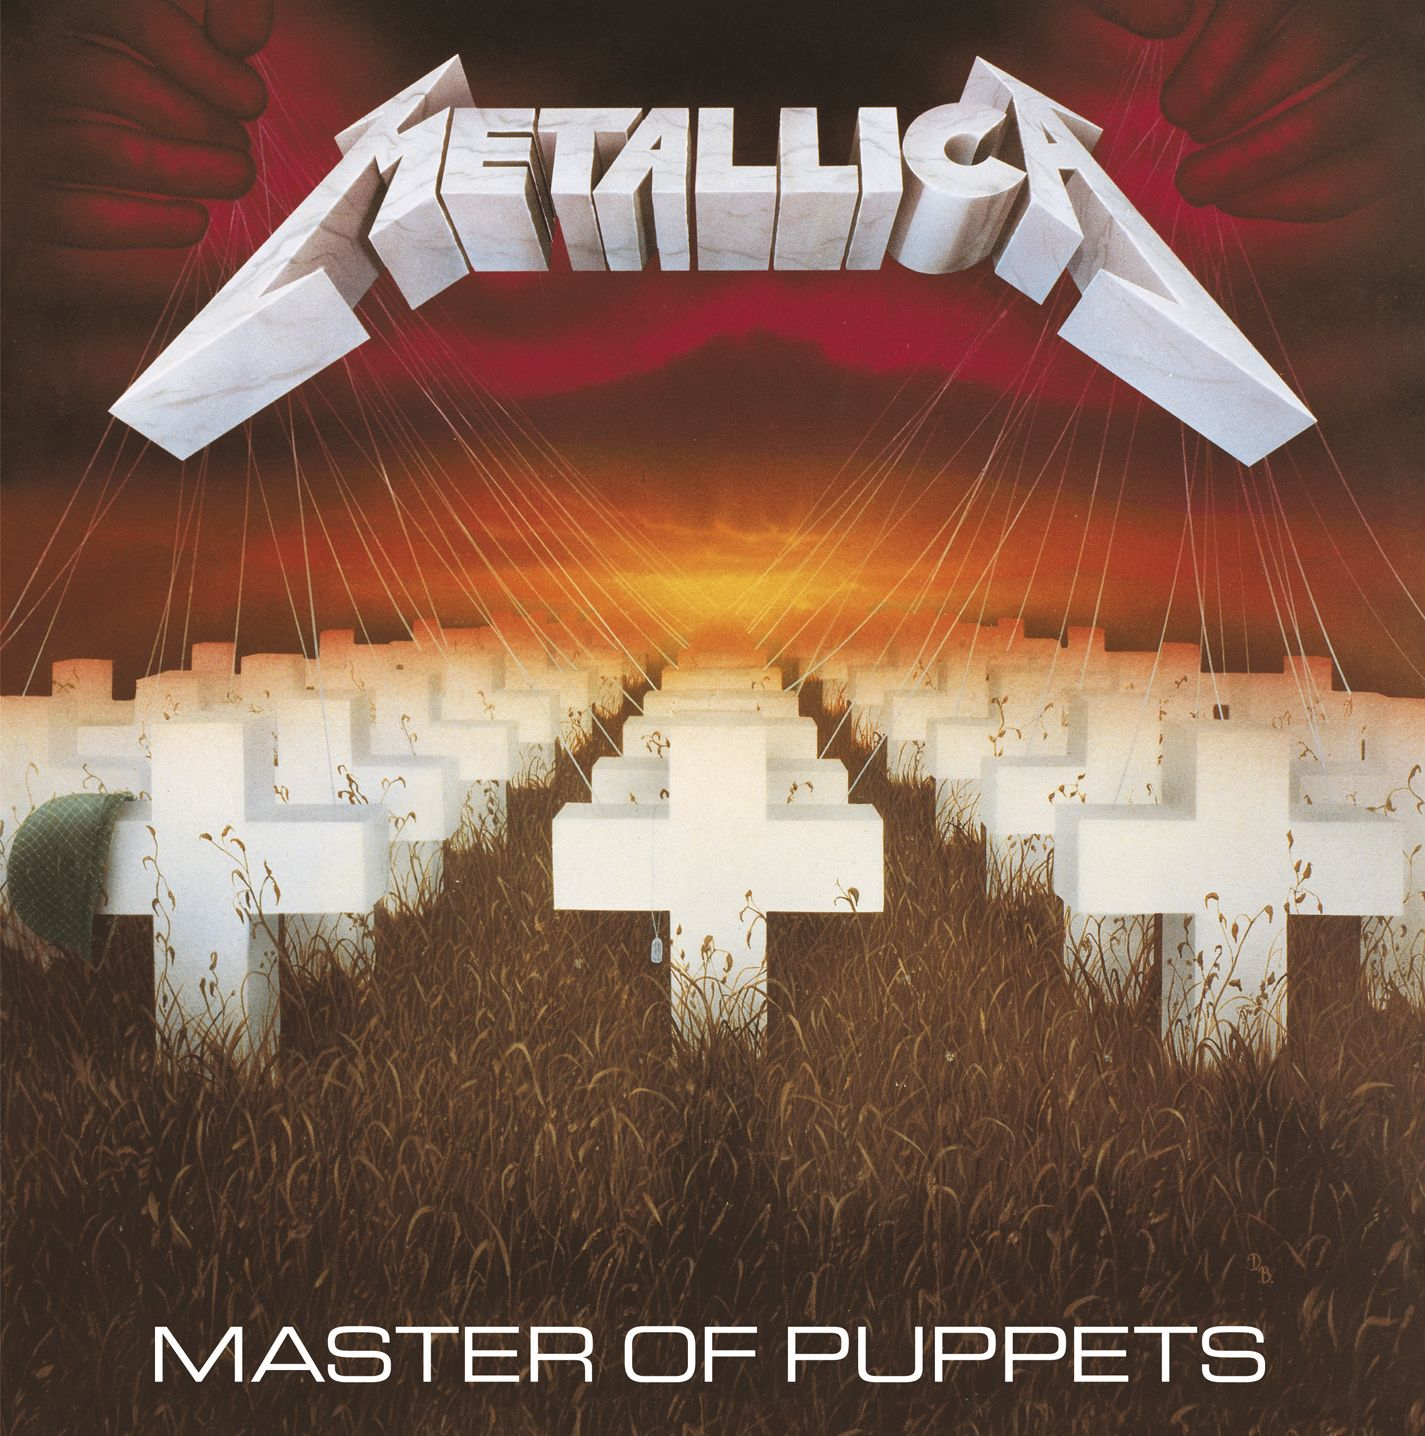 Metallica S Master Of Puppets The Story Behind The